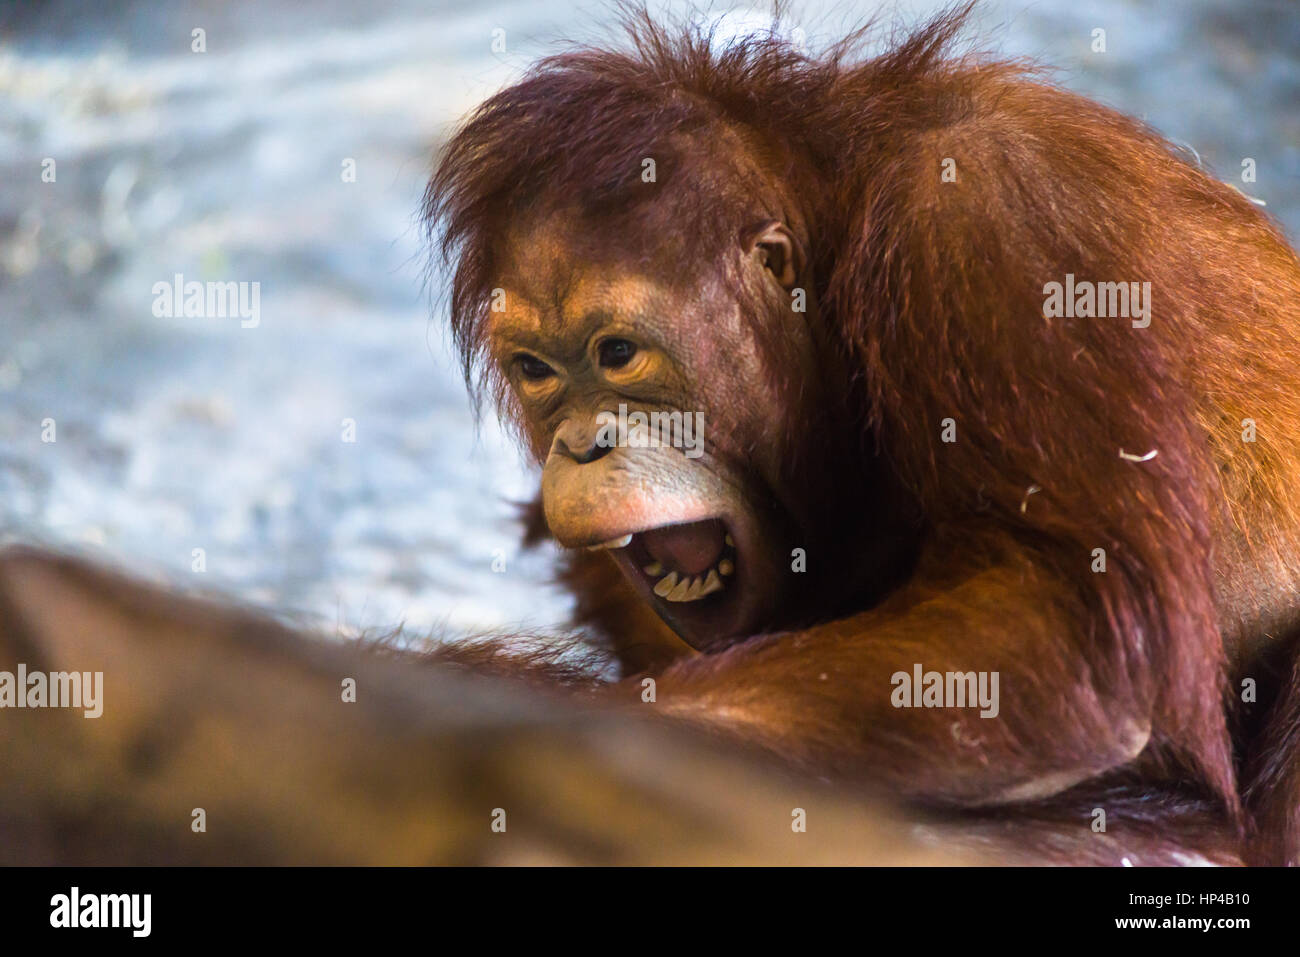 Growling Orangutan - Stock Image